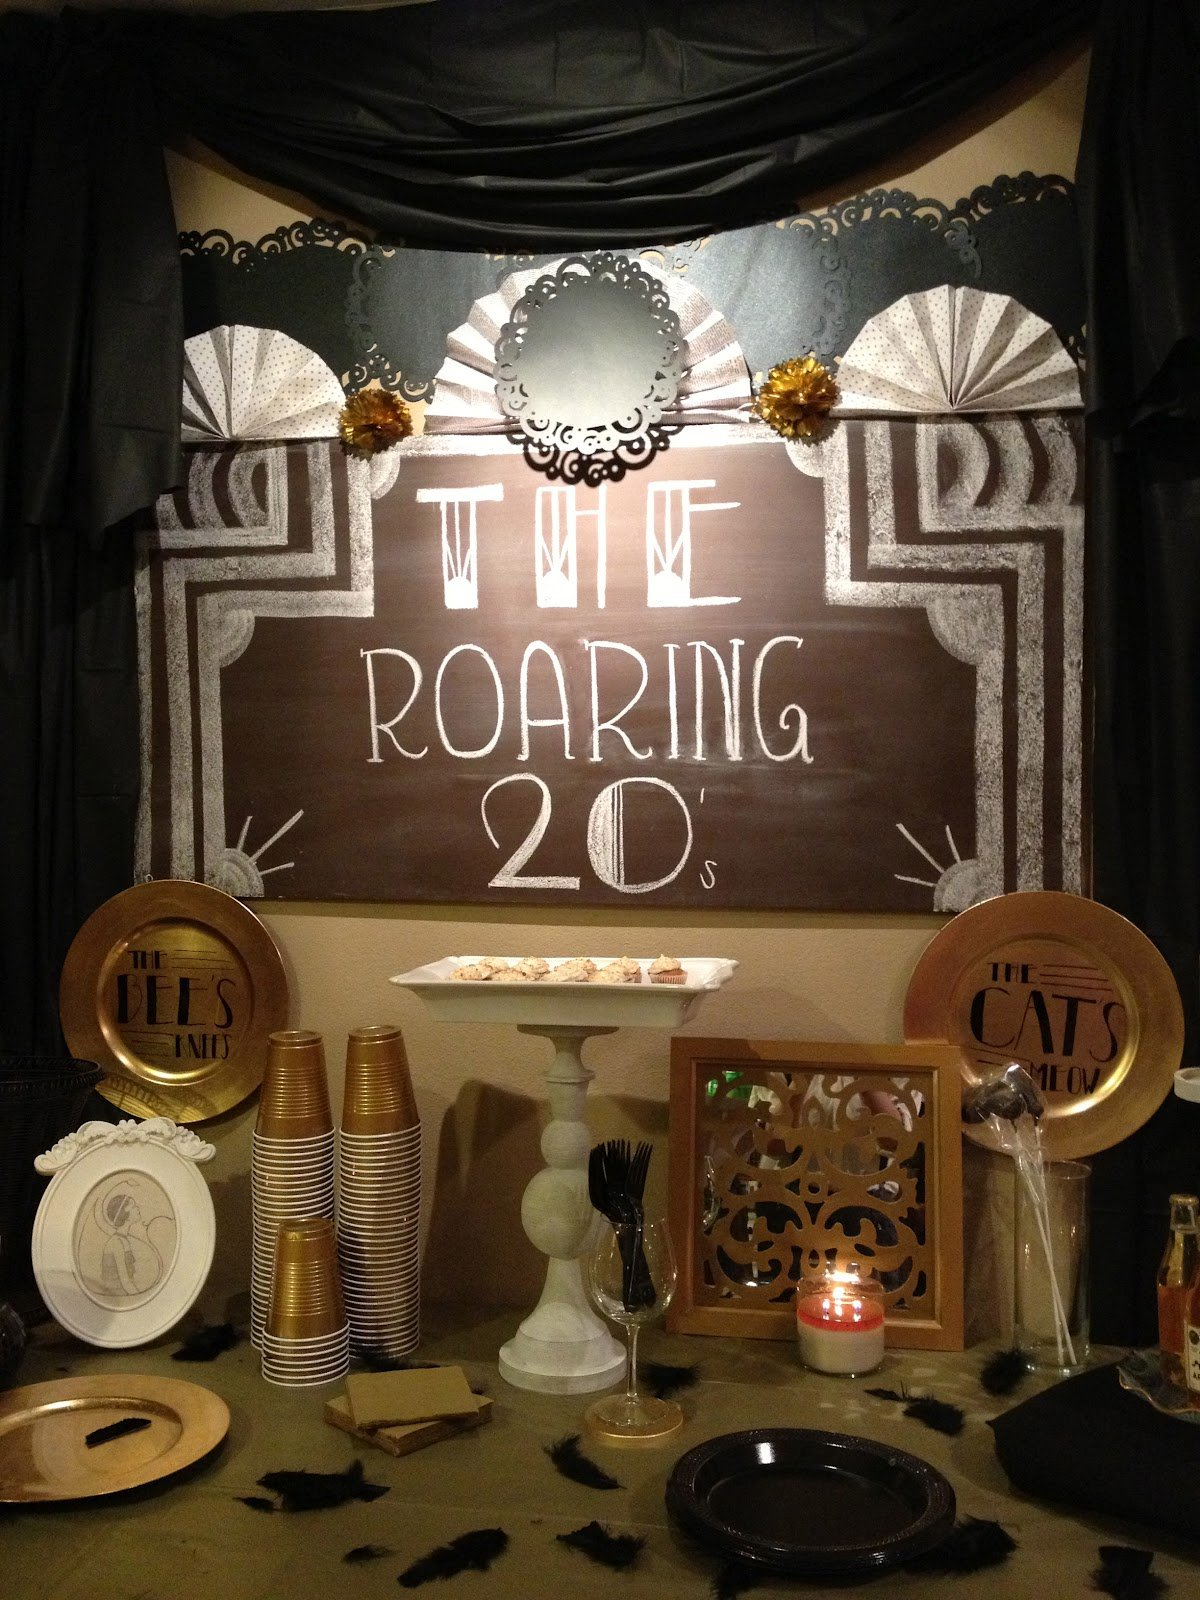 Roaring 20 s party quotes quotesgram for 1920s party decoration